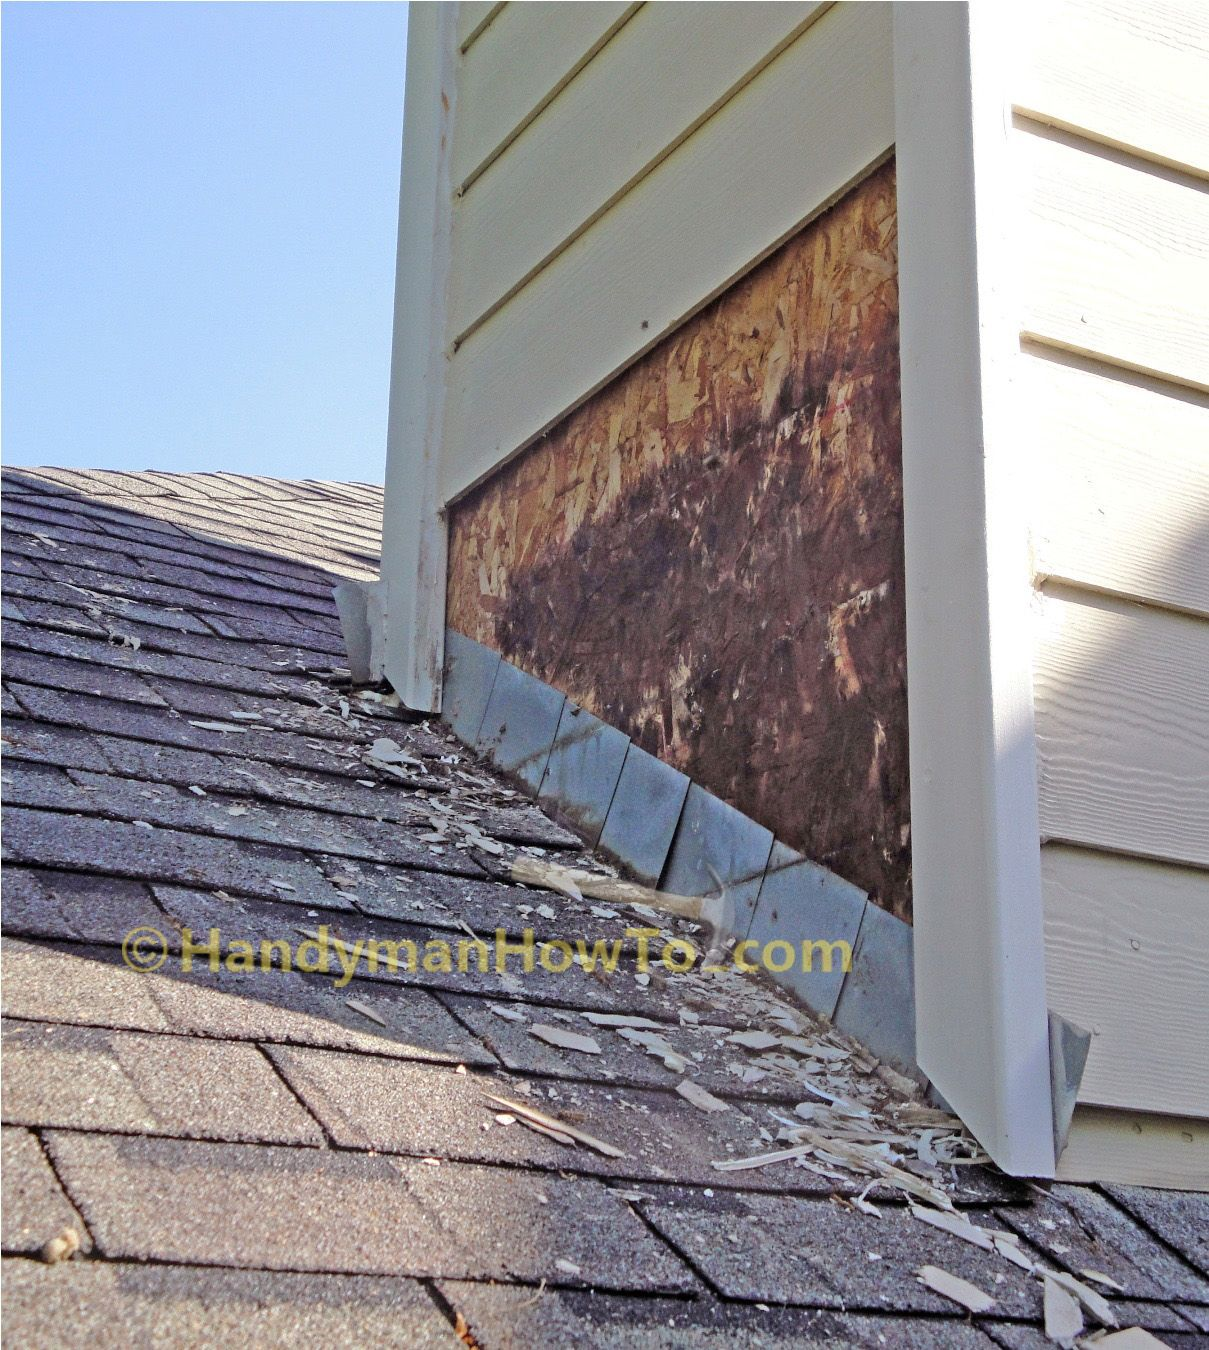 how to repair a leaky chimney the old shingles and step flashing